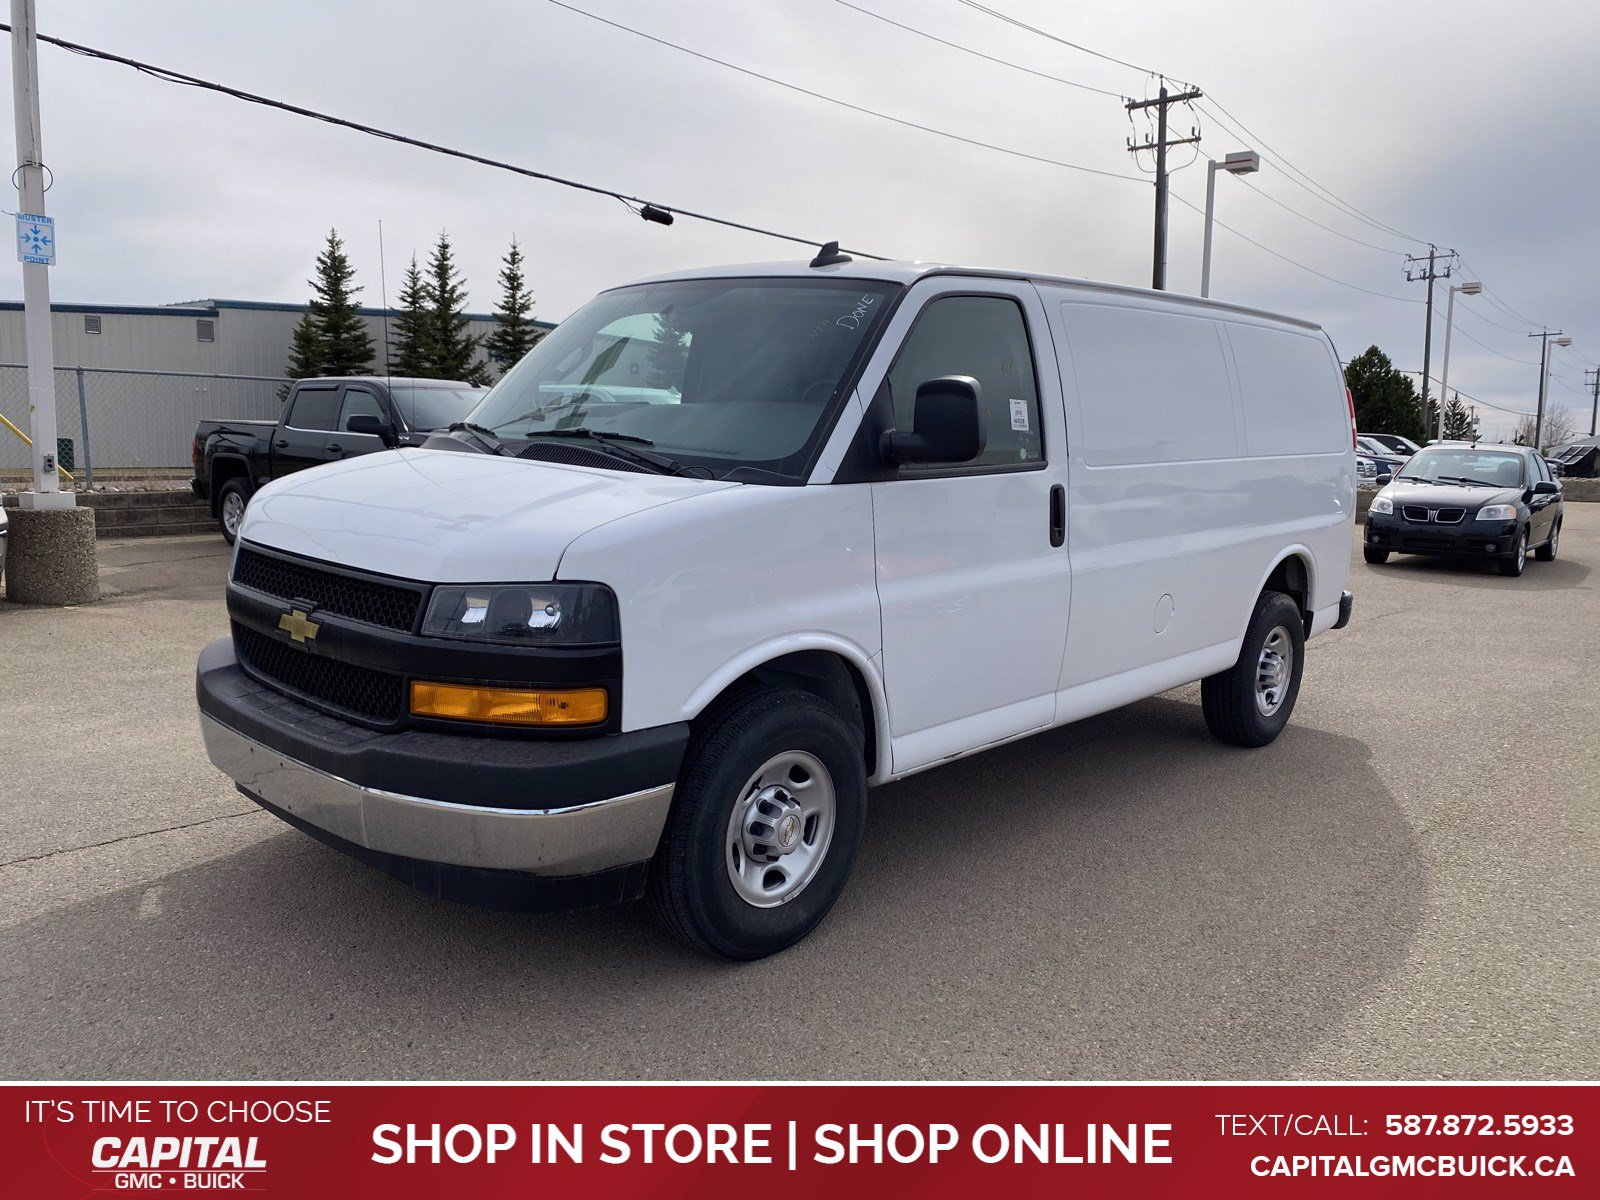 Certified Pre-Owned 2018 Chevrolet Express Cargo Van 2500 RWD 135 6.0 V8 ENGINE